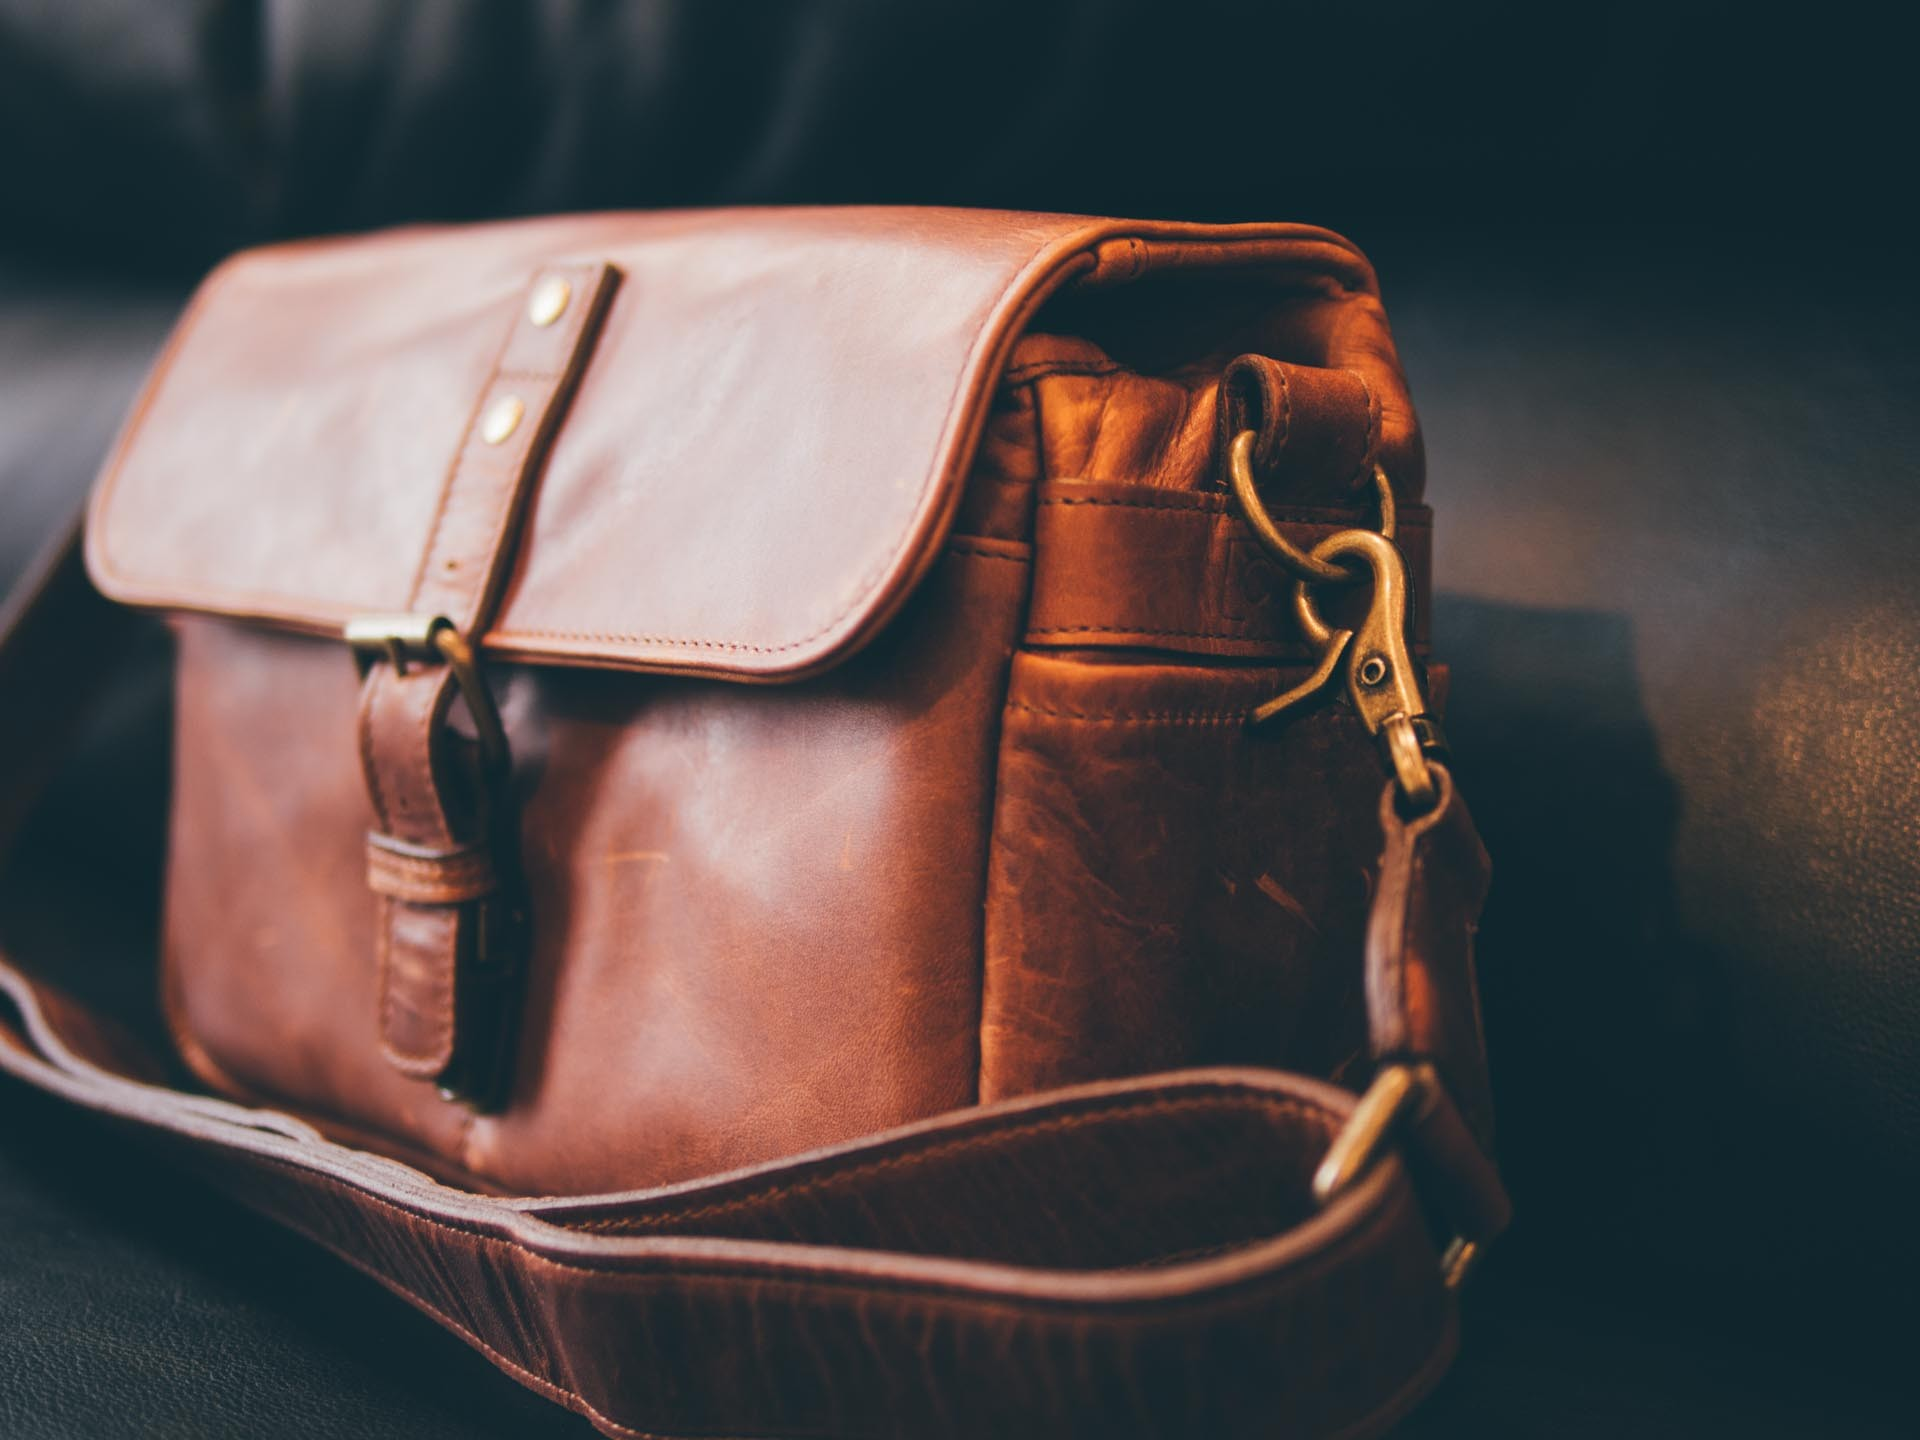 The ONA Bowery camera bag and insert. ($139–$249)